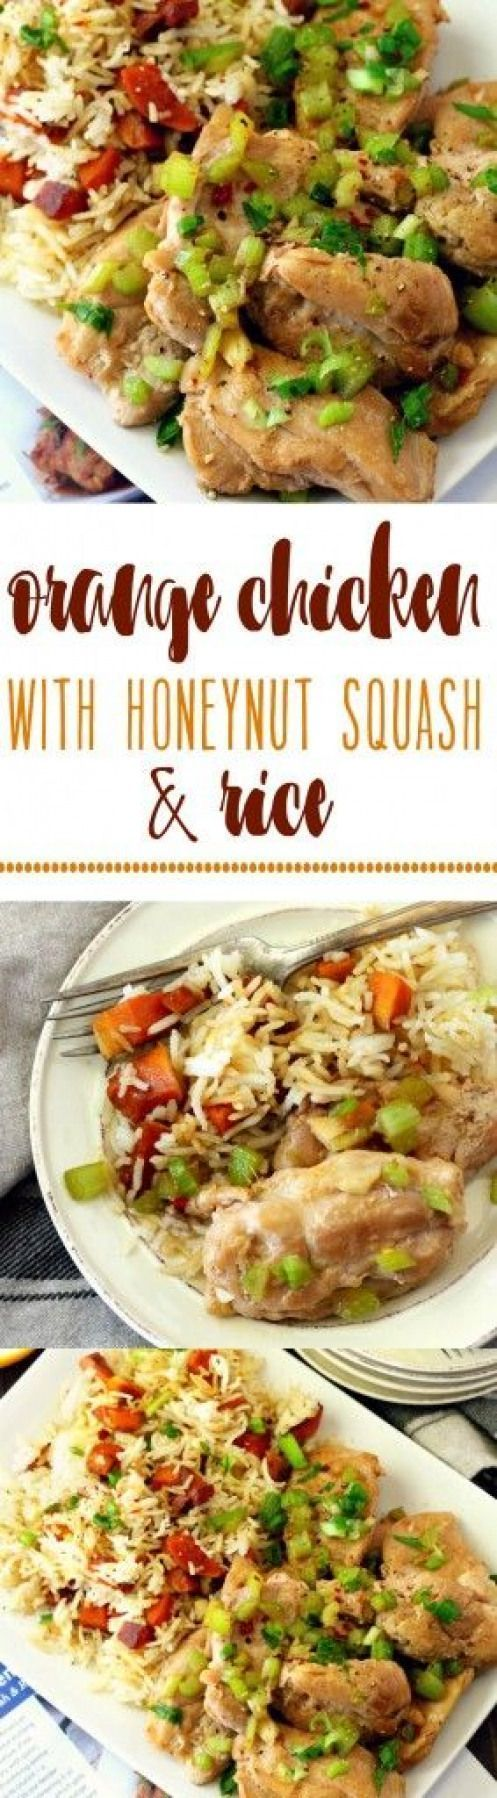 Orange Chicken with Honeynut Squash & Rice  a delicious spin on the Chinese-American takeout dish is packed with layers of flavor and texture. #detoxsoup #chineseorangechicken Orange Chicken with Honeynut Squash & Rice  a delicious spin on the Chinese-American takeout dish is packed with layers of flavor and texture. #detoxsoup #chineseorangechicken Orange Chicken with Honeynut Squash & Rice  a delicious spin on the Chinese-American takeout dish is packed with layers of flavor and texture. #deto #chineseorangechicken